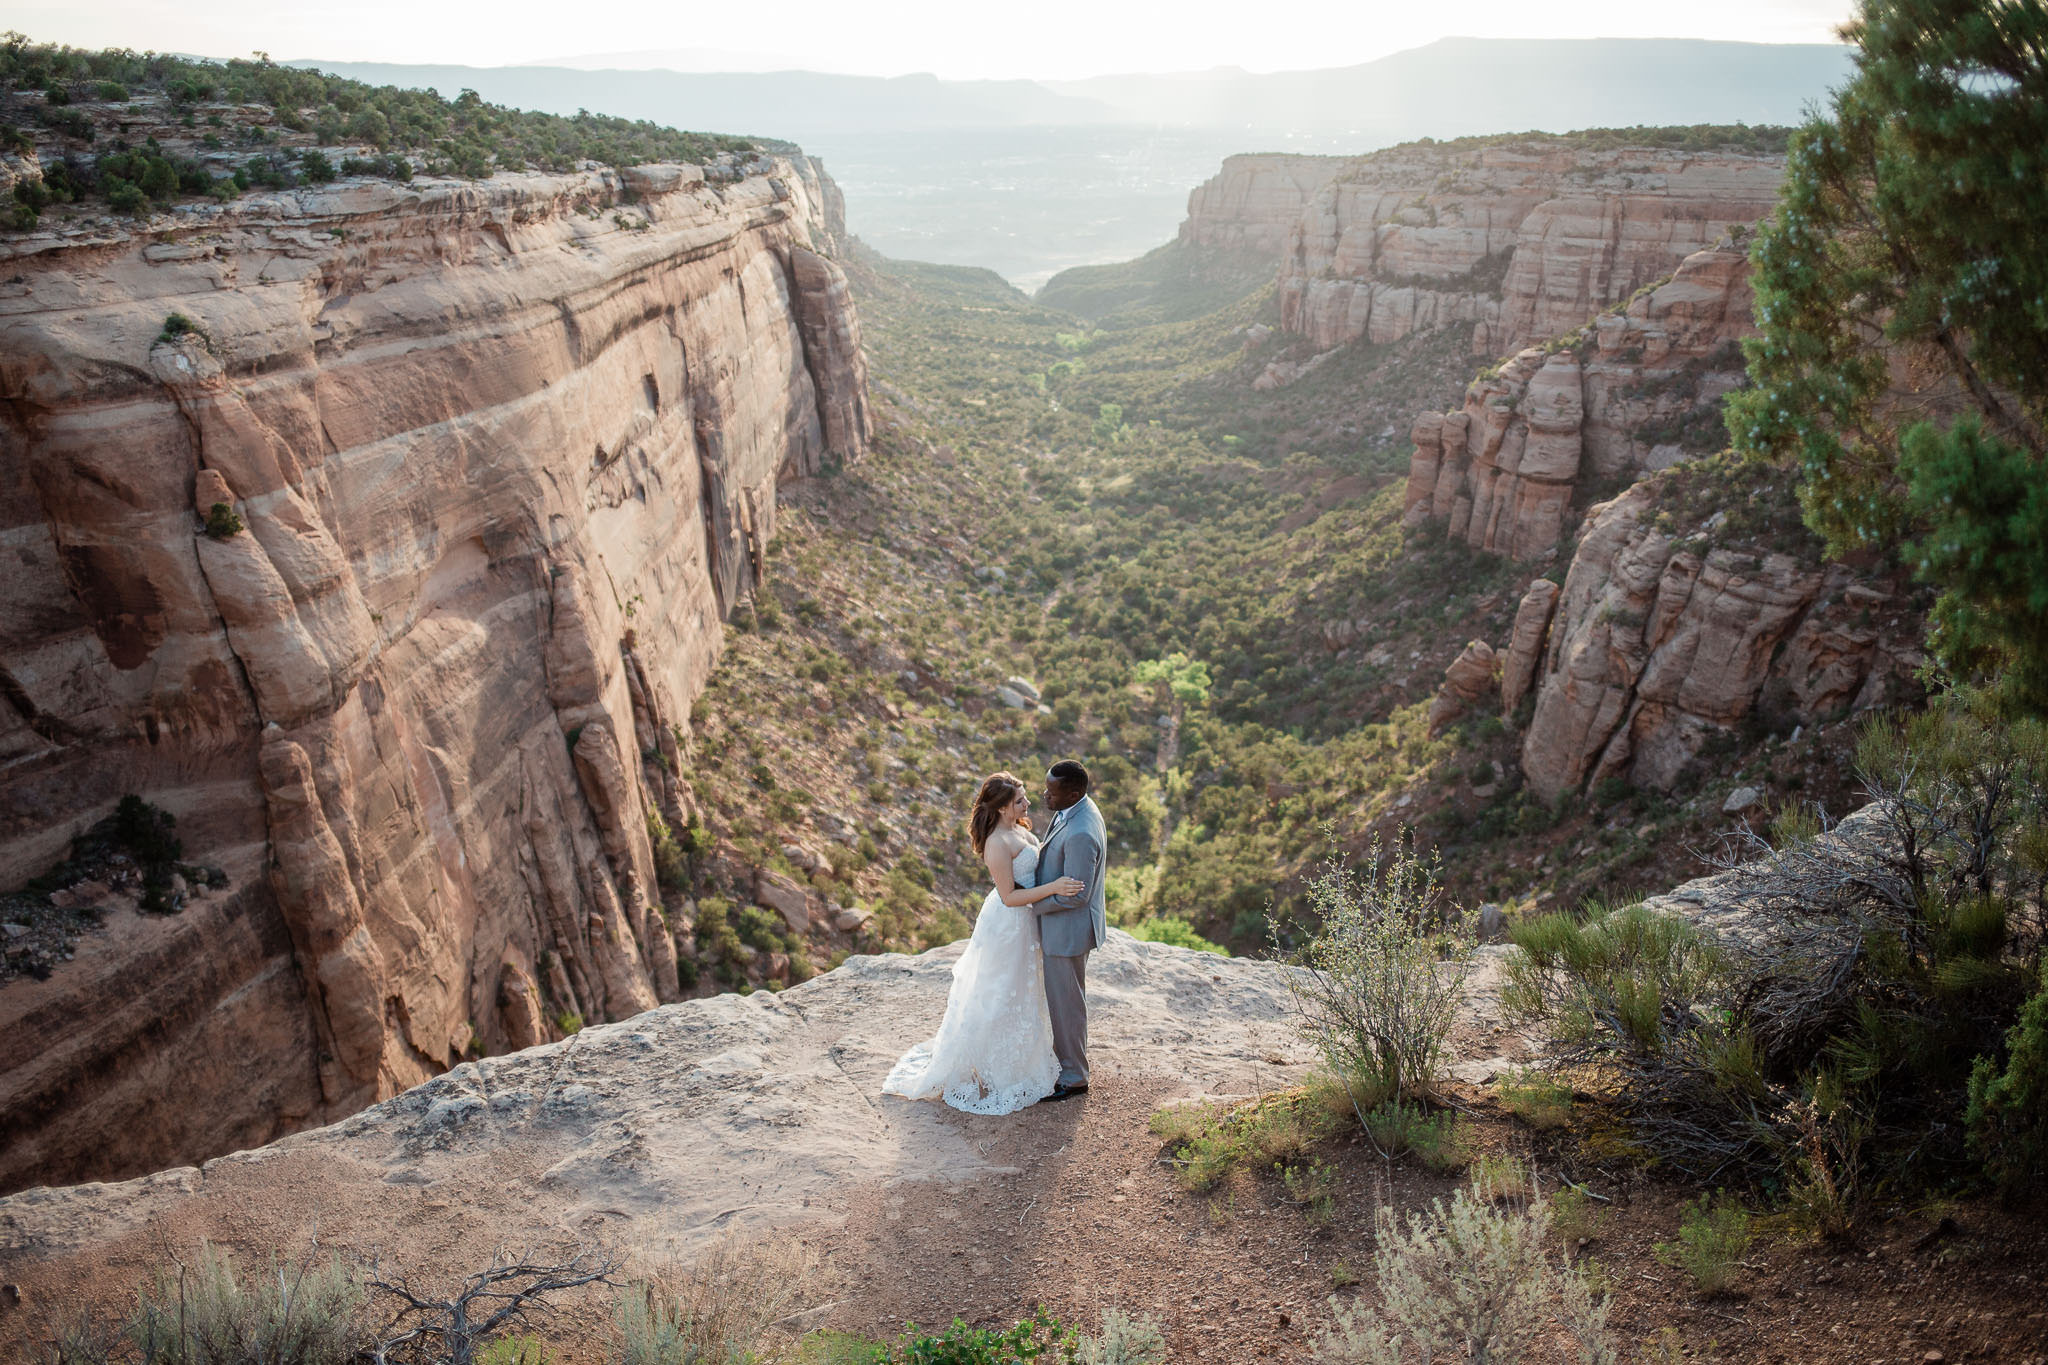 Interracial wedding couple stands together in the Colorado National Monument